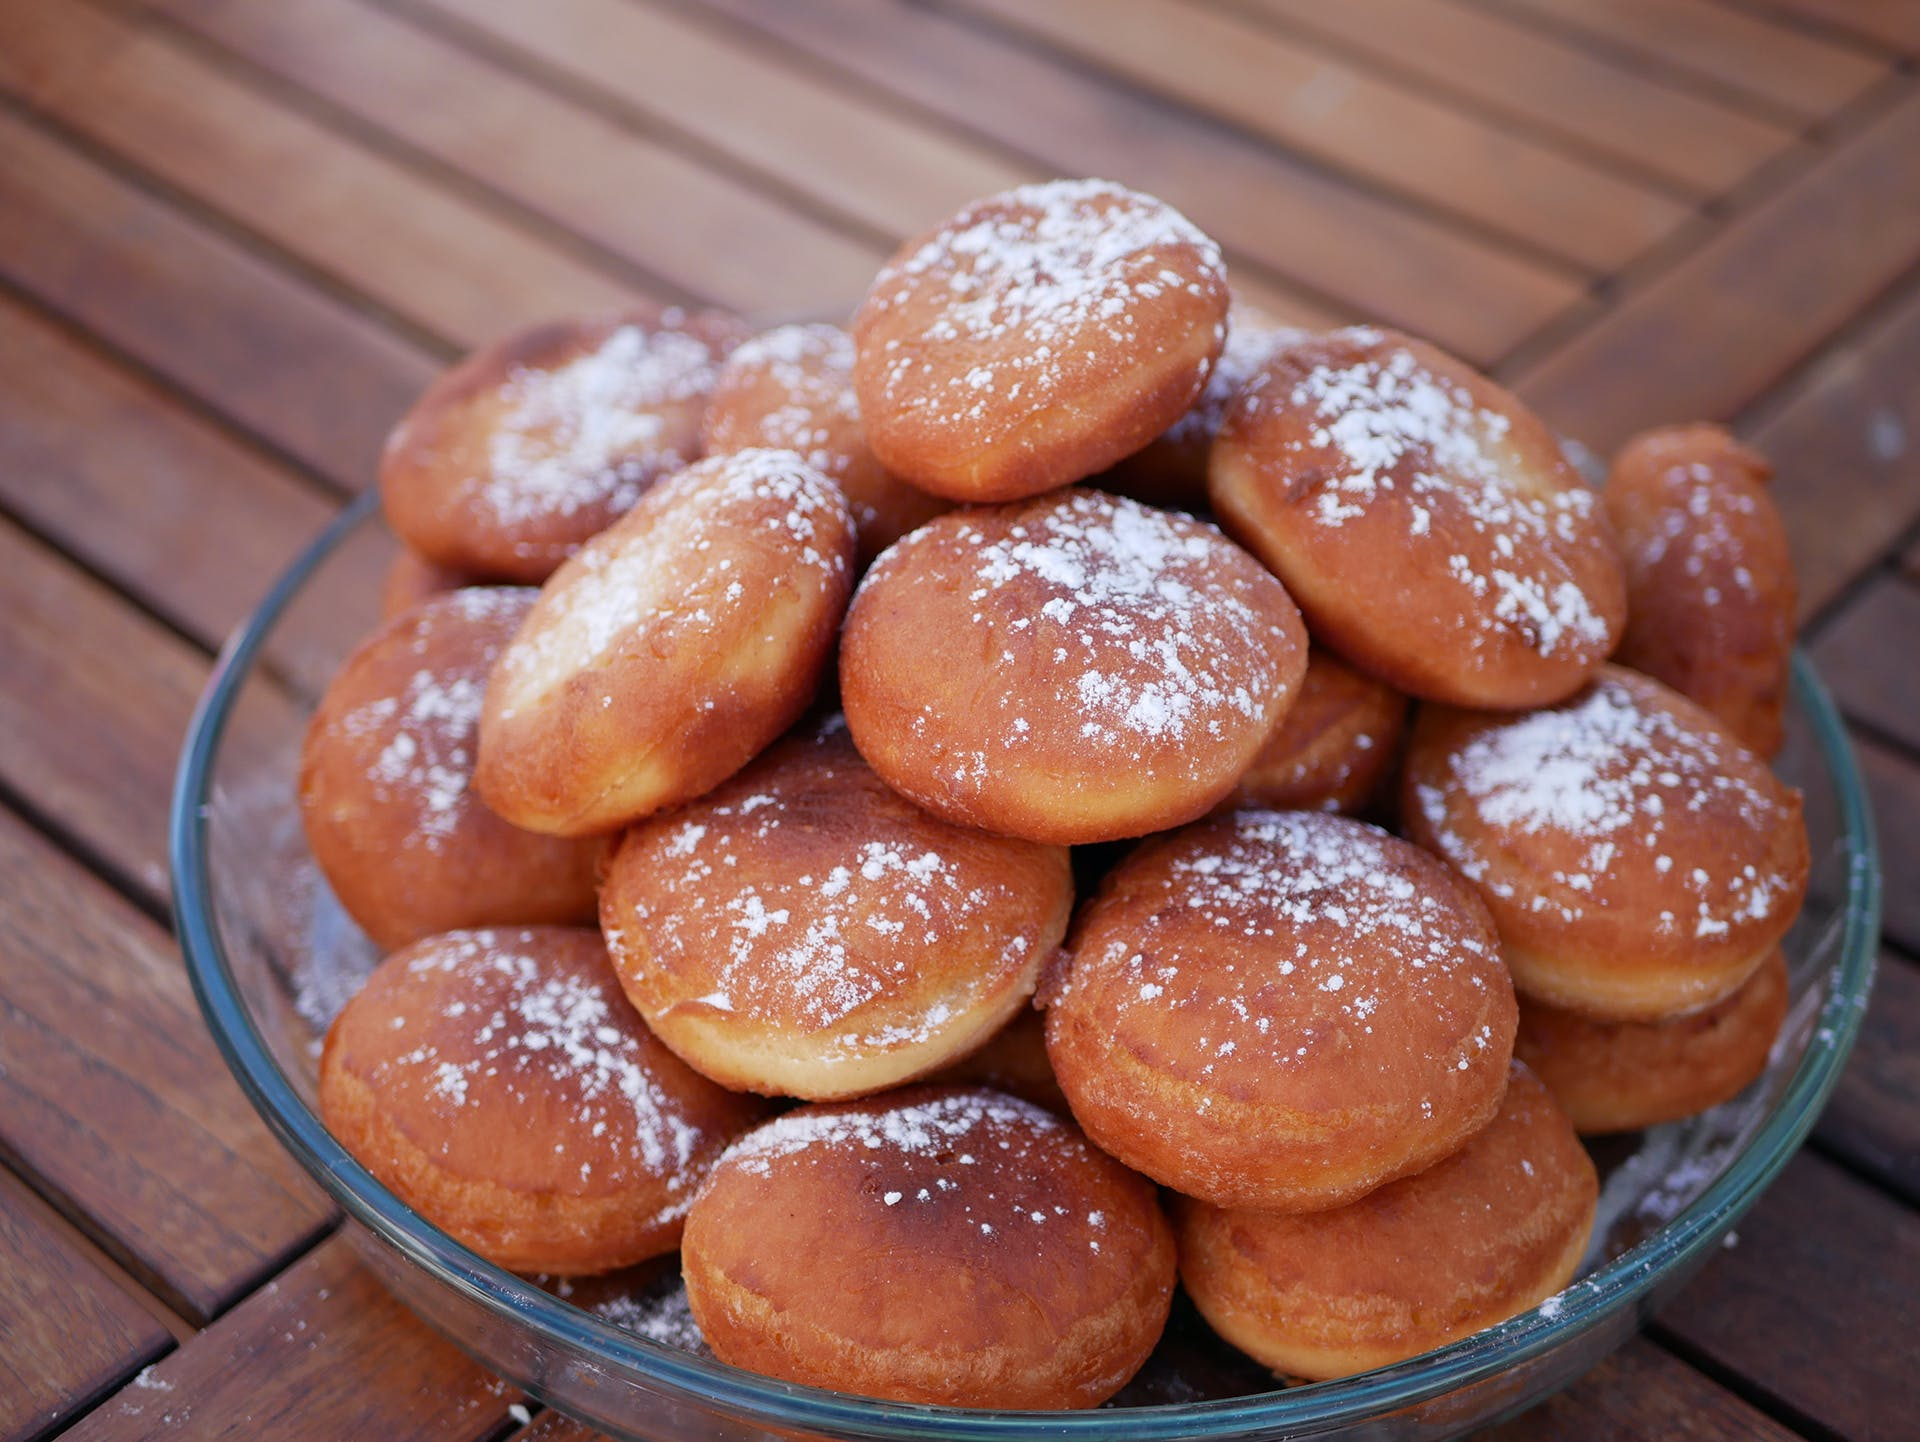 Bowl of Pastries